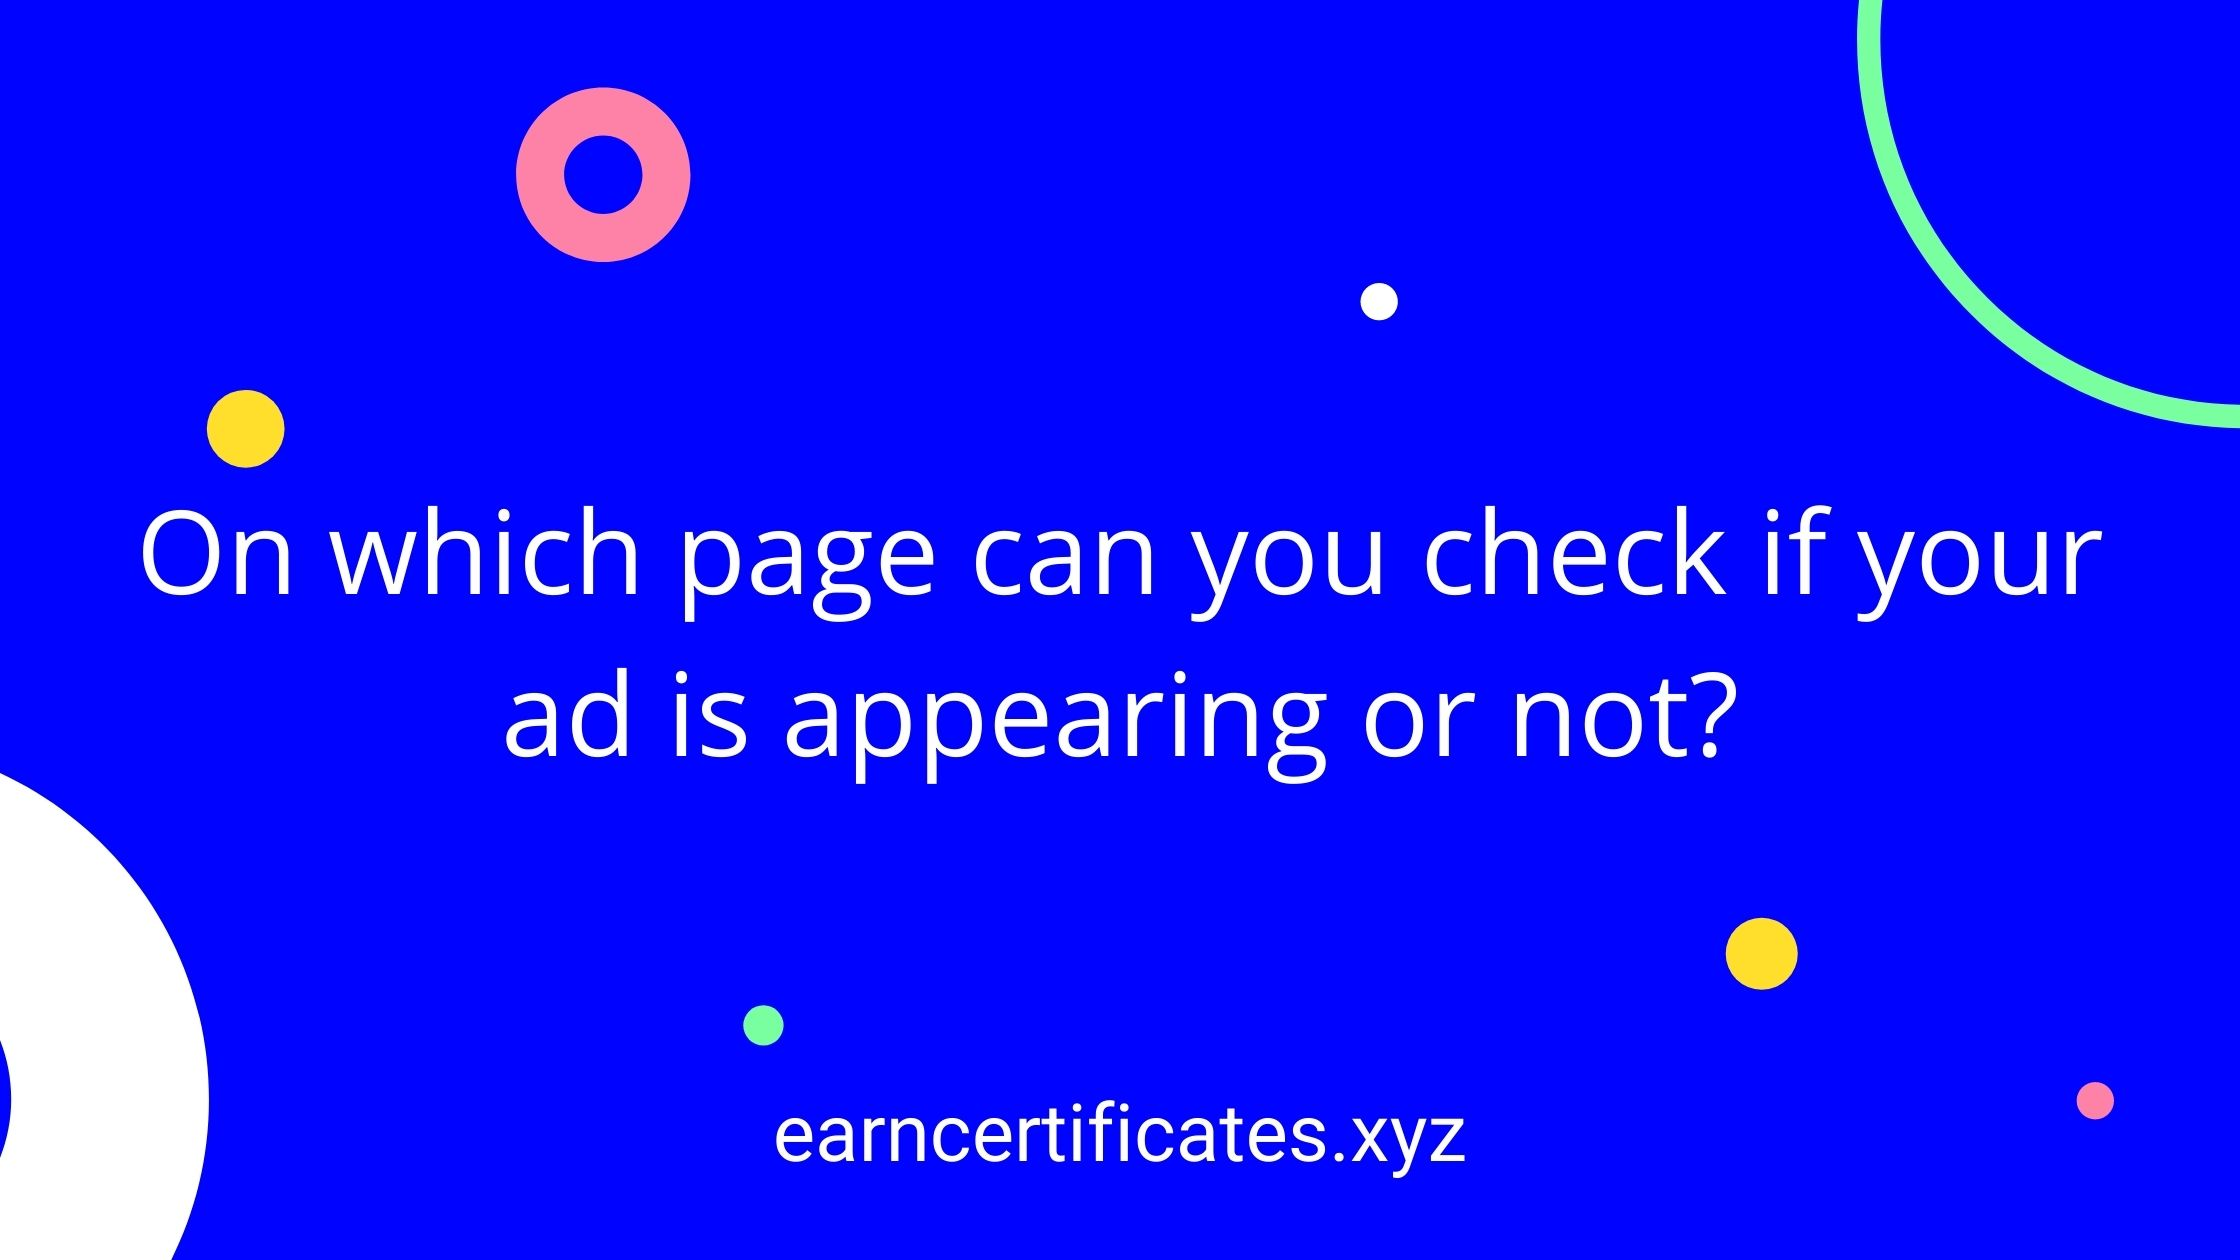 On which page can you check if your ad is appearing or not?